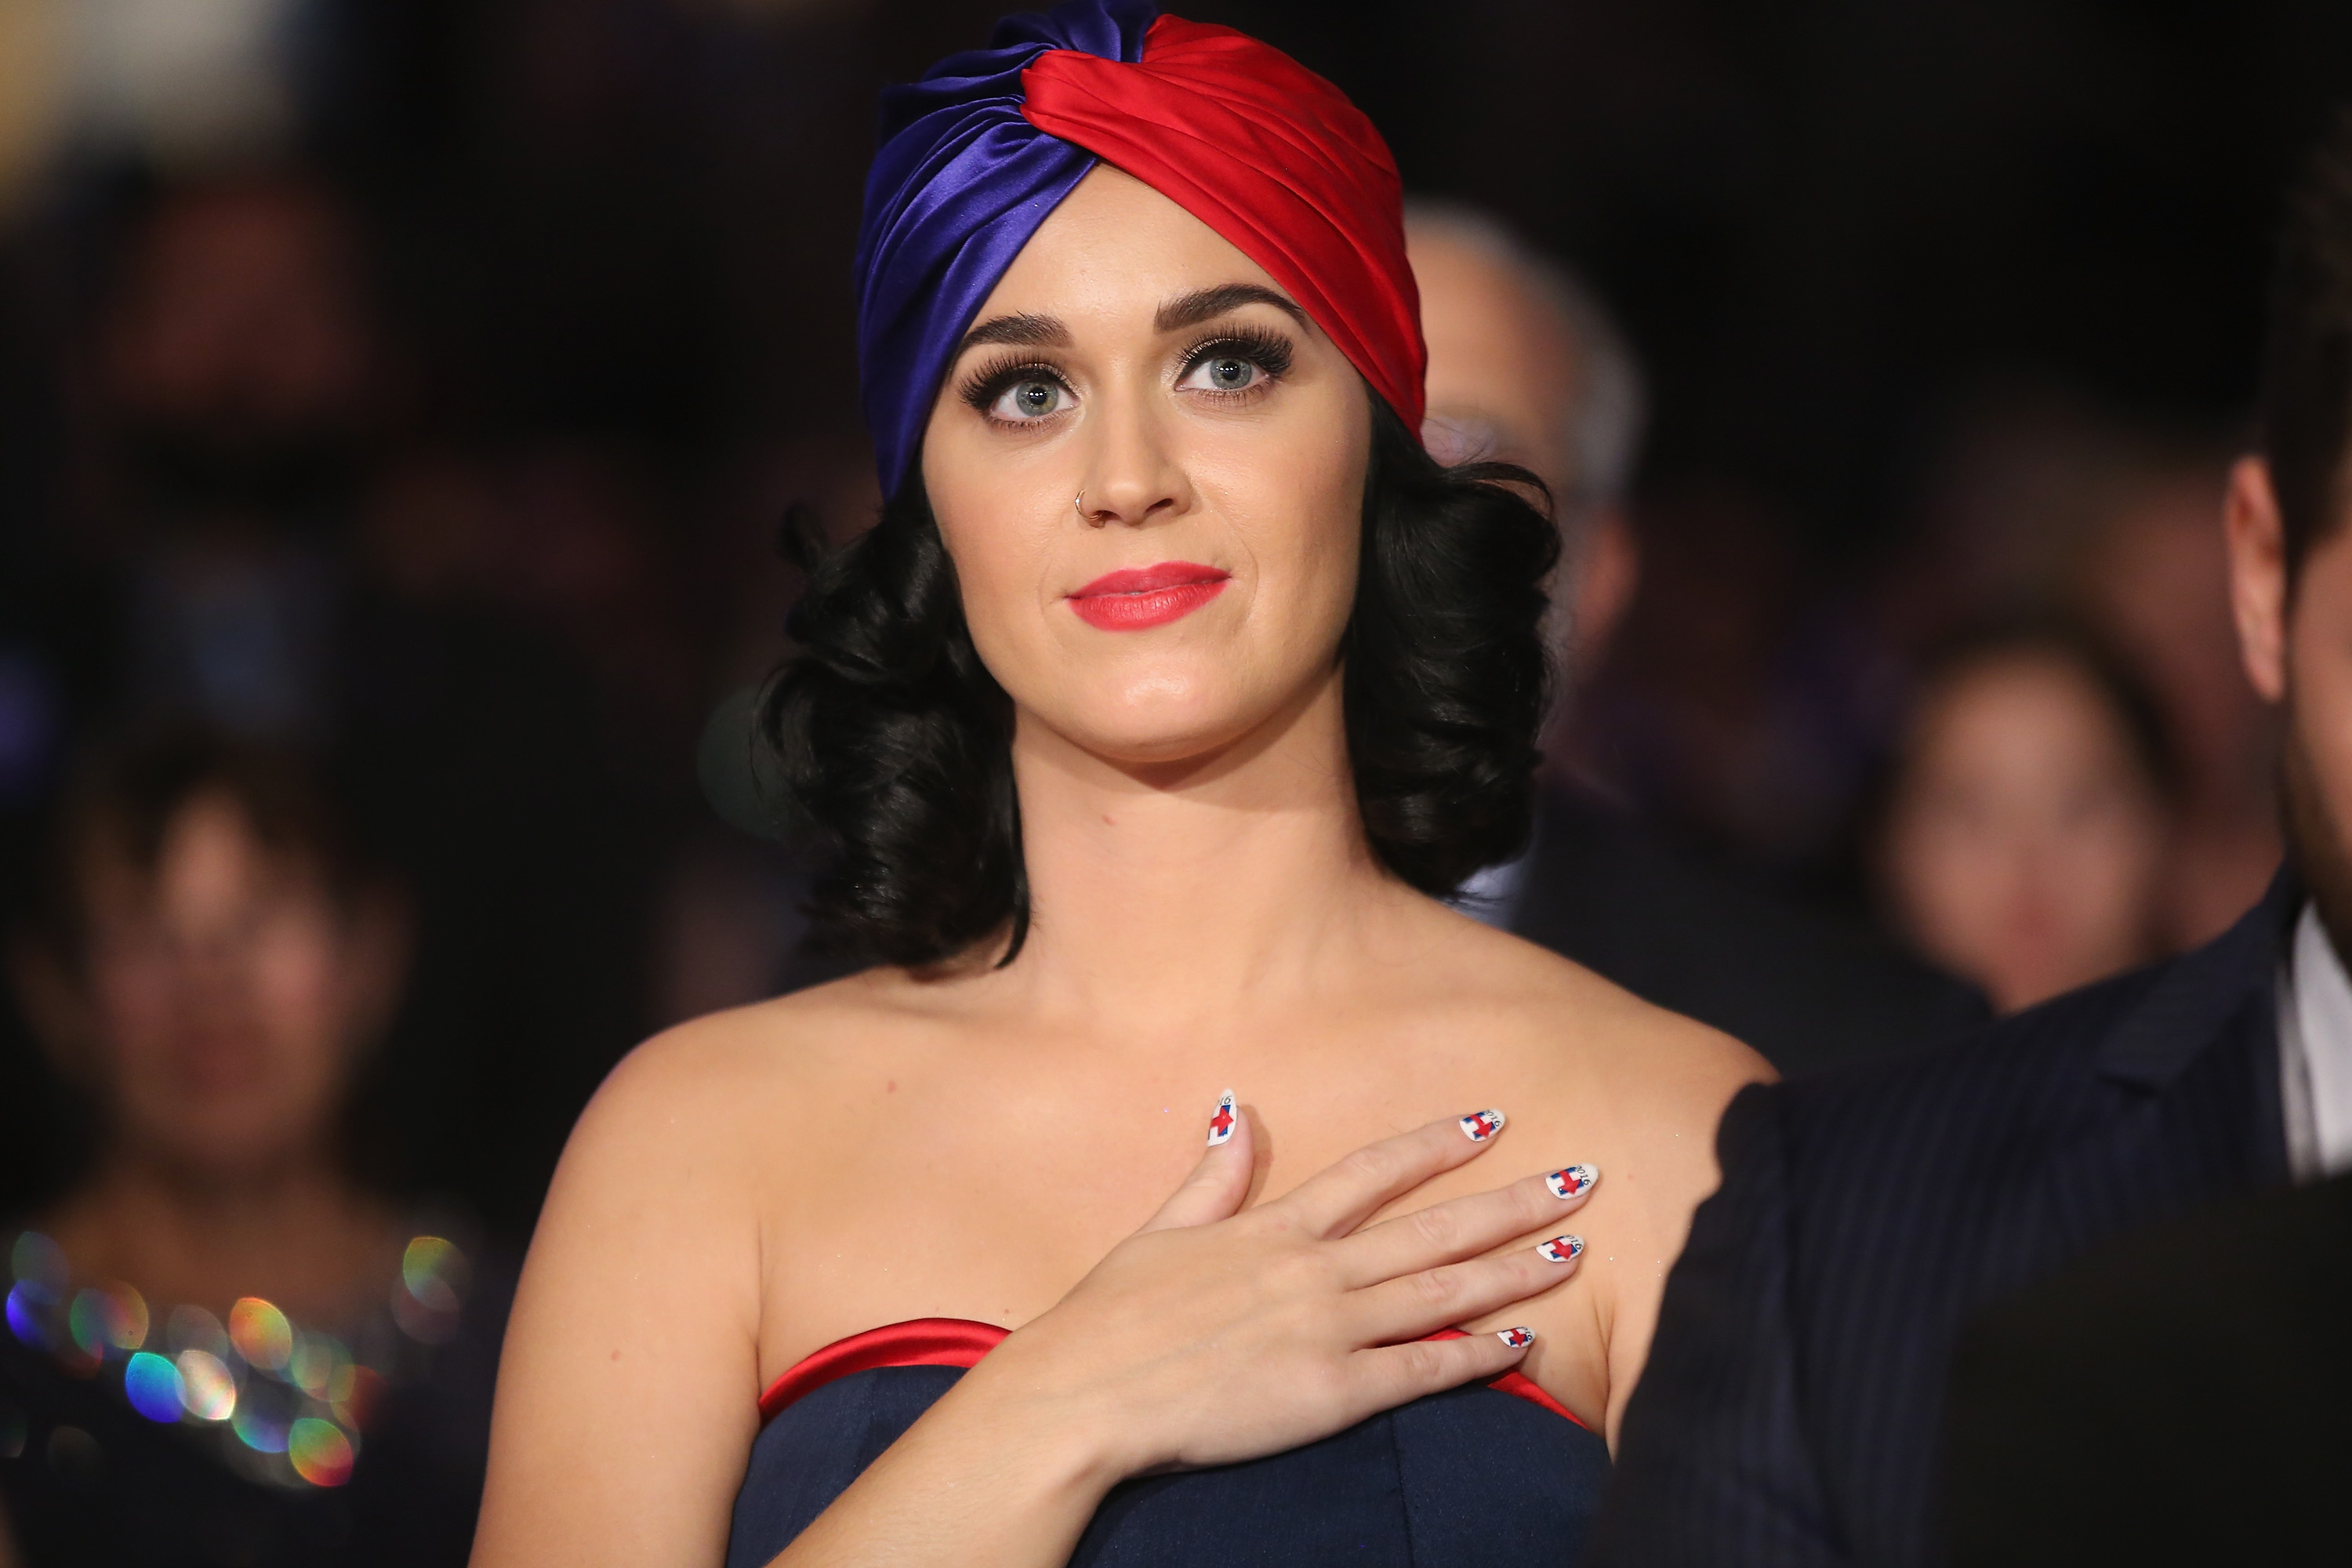 GettyImages 494135132 Katy Perry Is Using Her Naked Body To Change The World